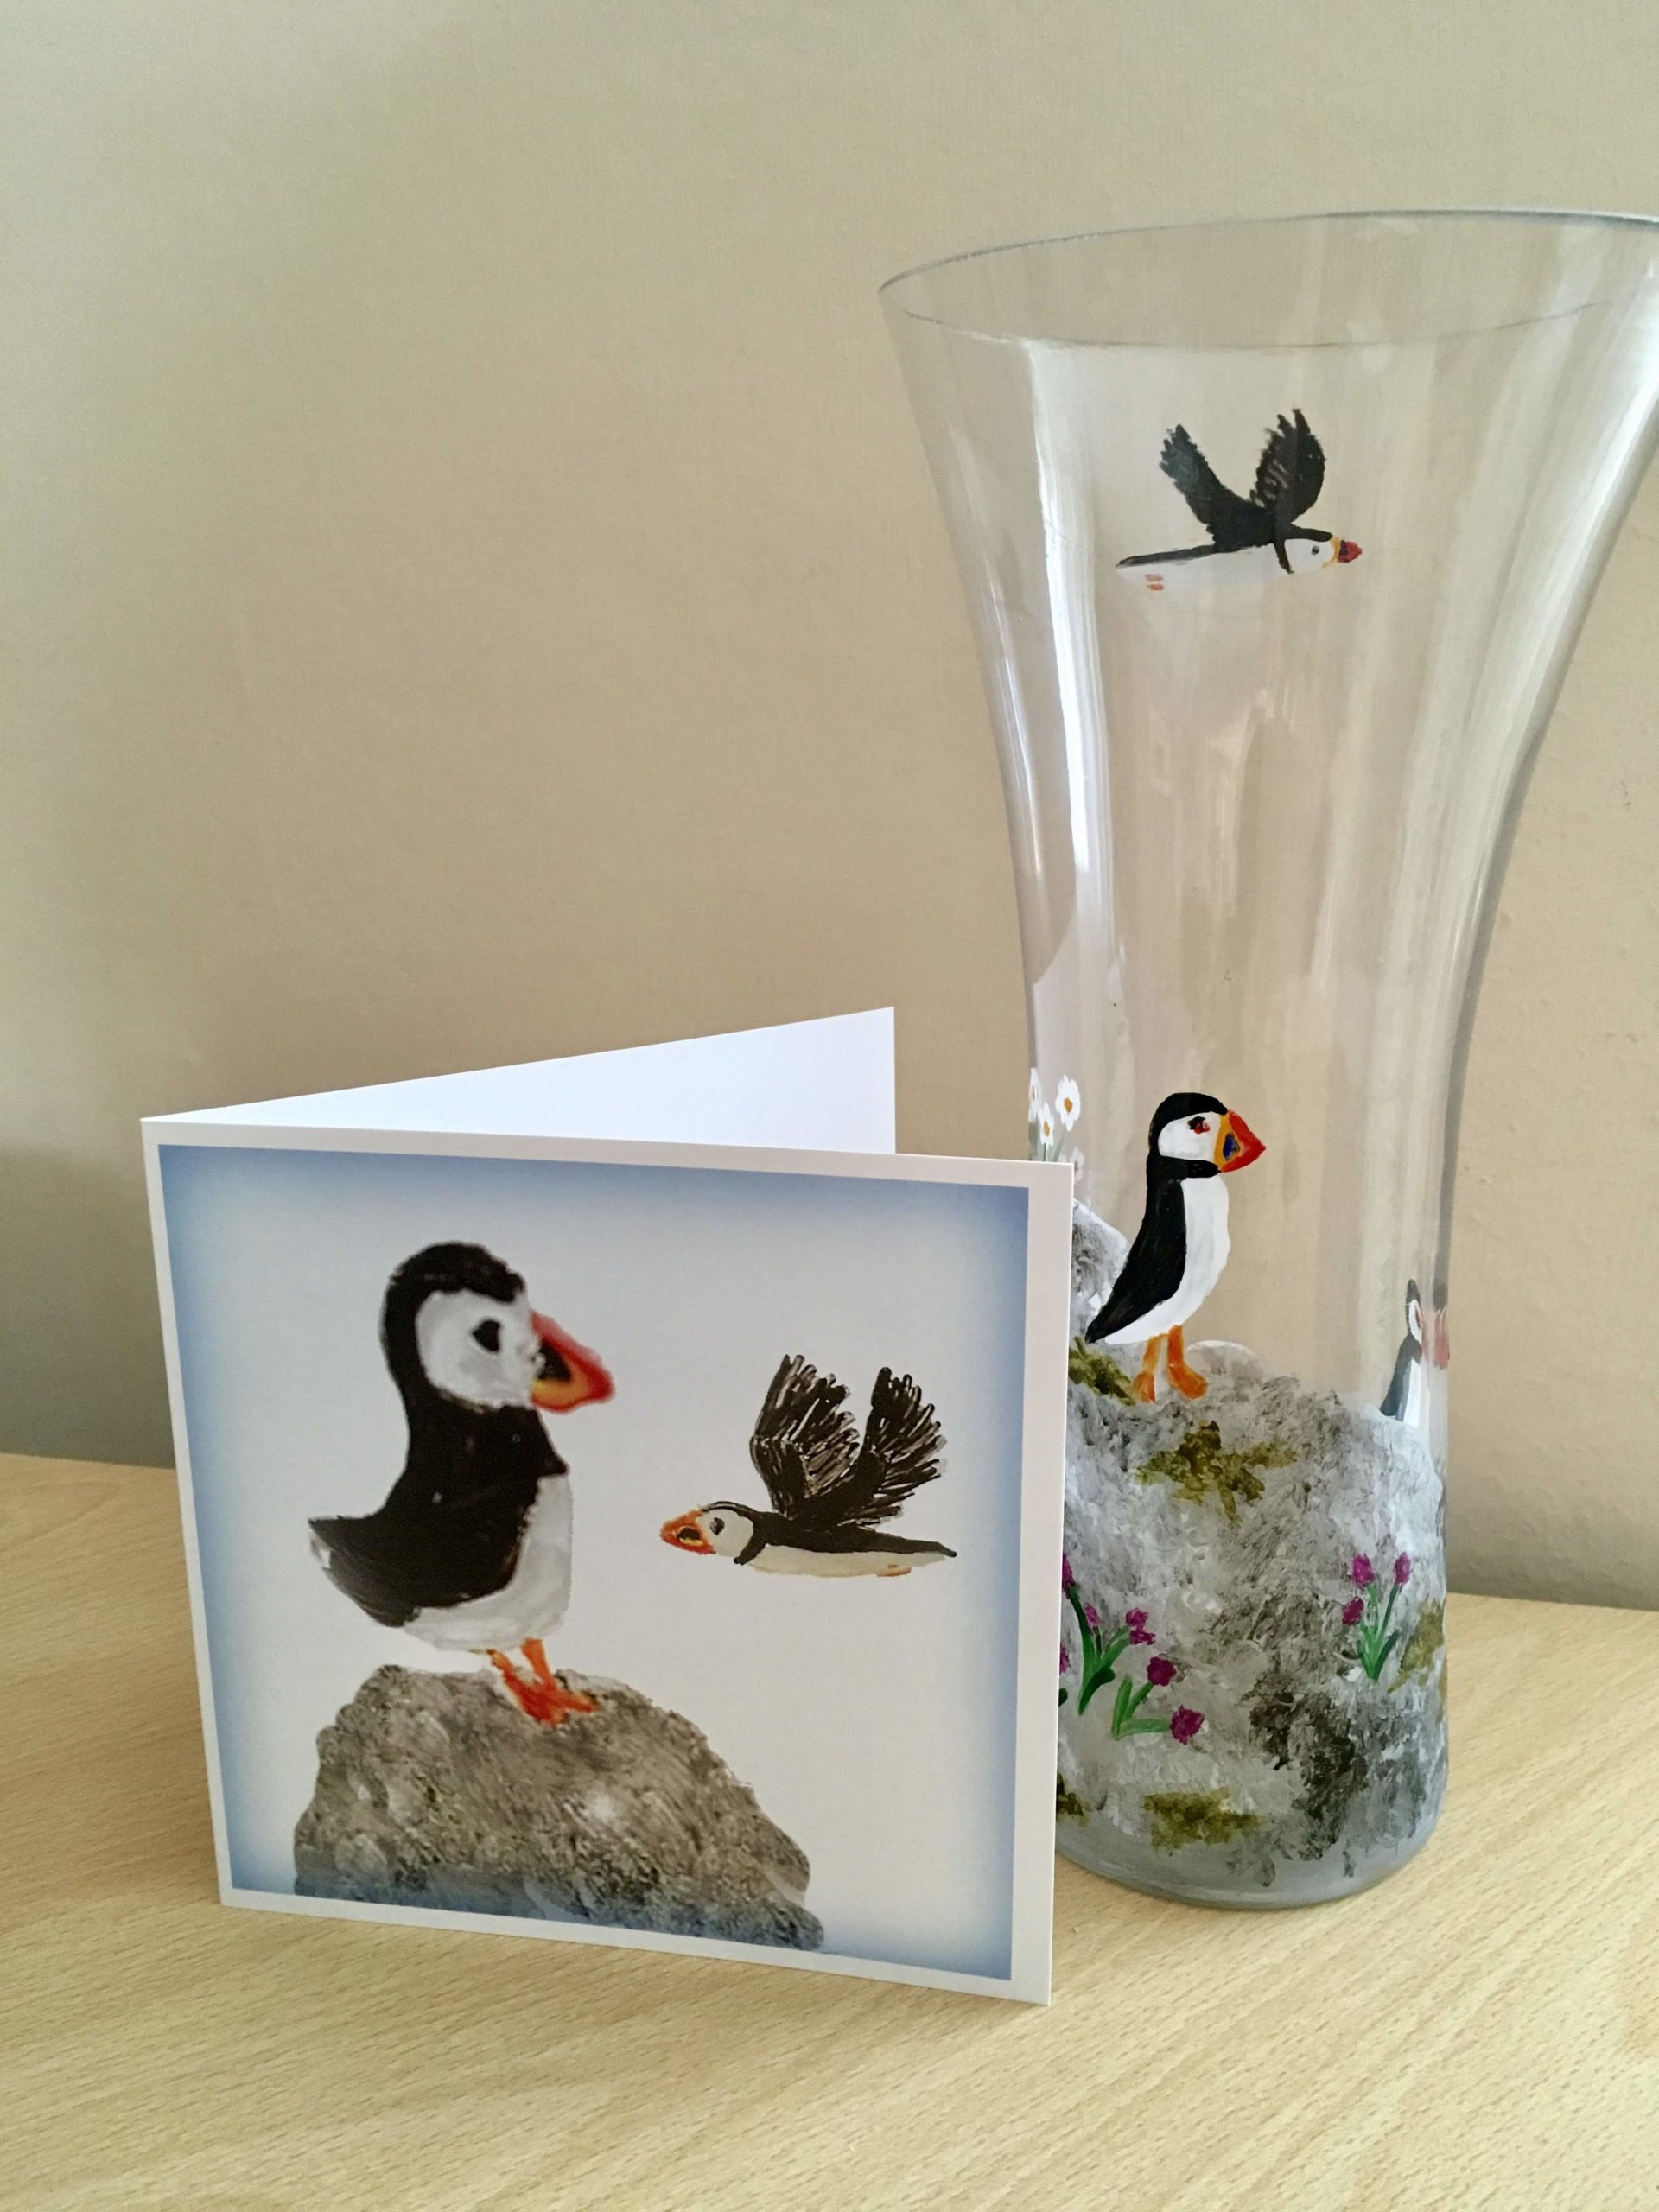 Puffin greeting card photographed with a puffin vase glass painting